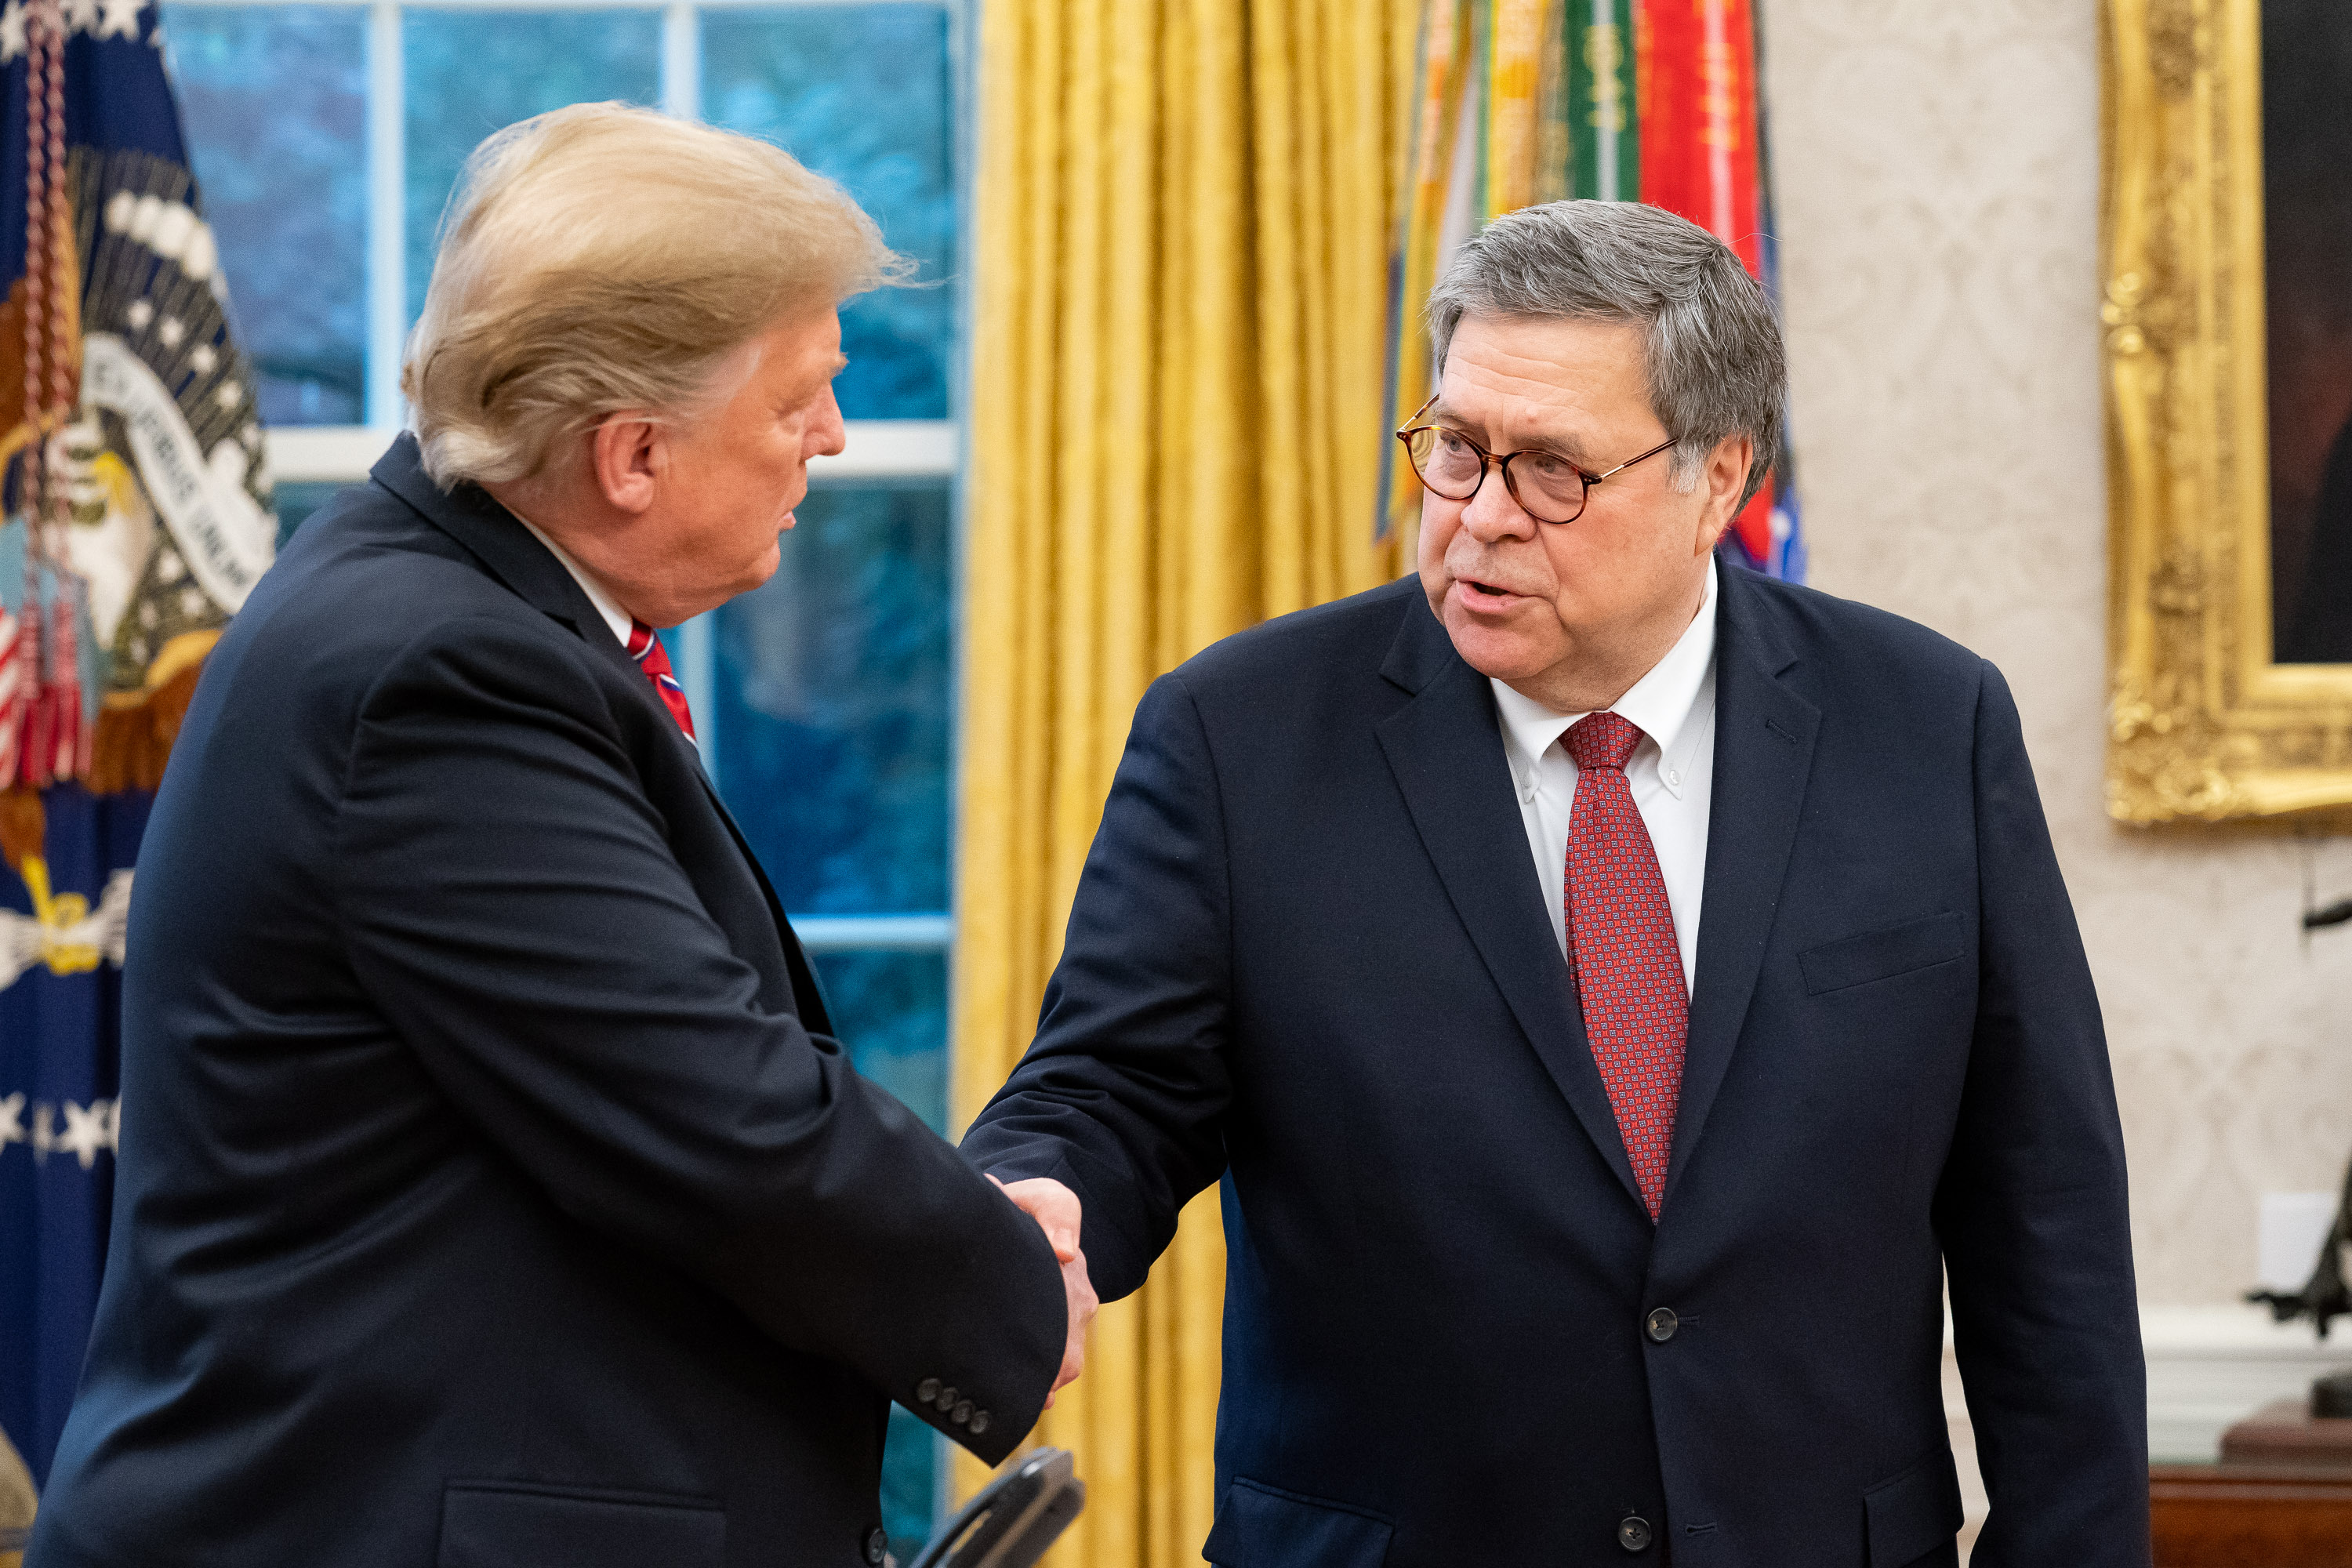 President Donald Trump and U.S. Attorney General William Barr shake hands in the Oval Office.